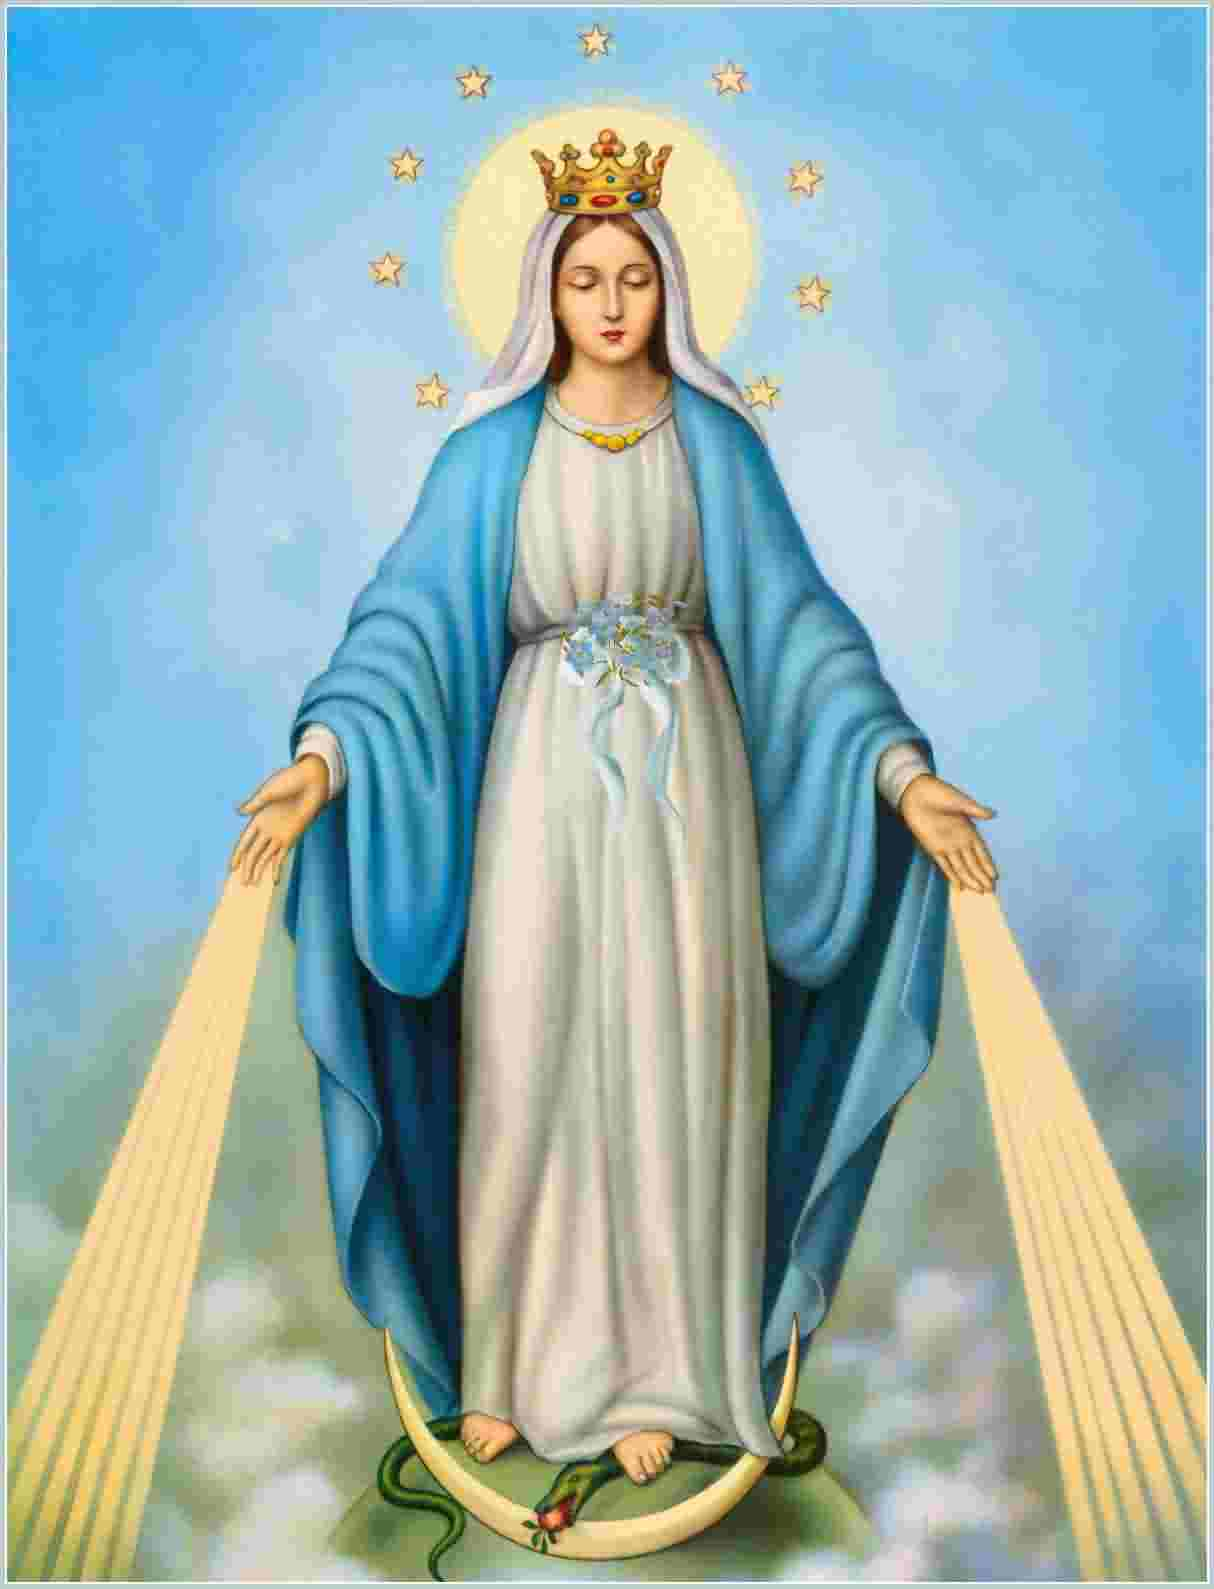 2-Immaculate Conception Day Wishes